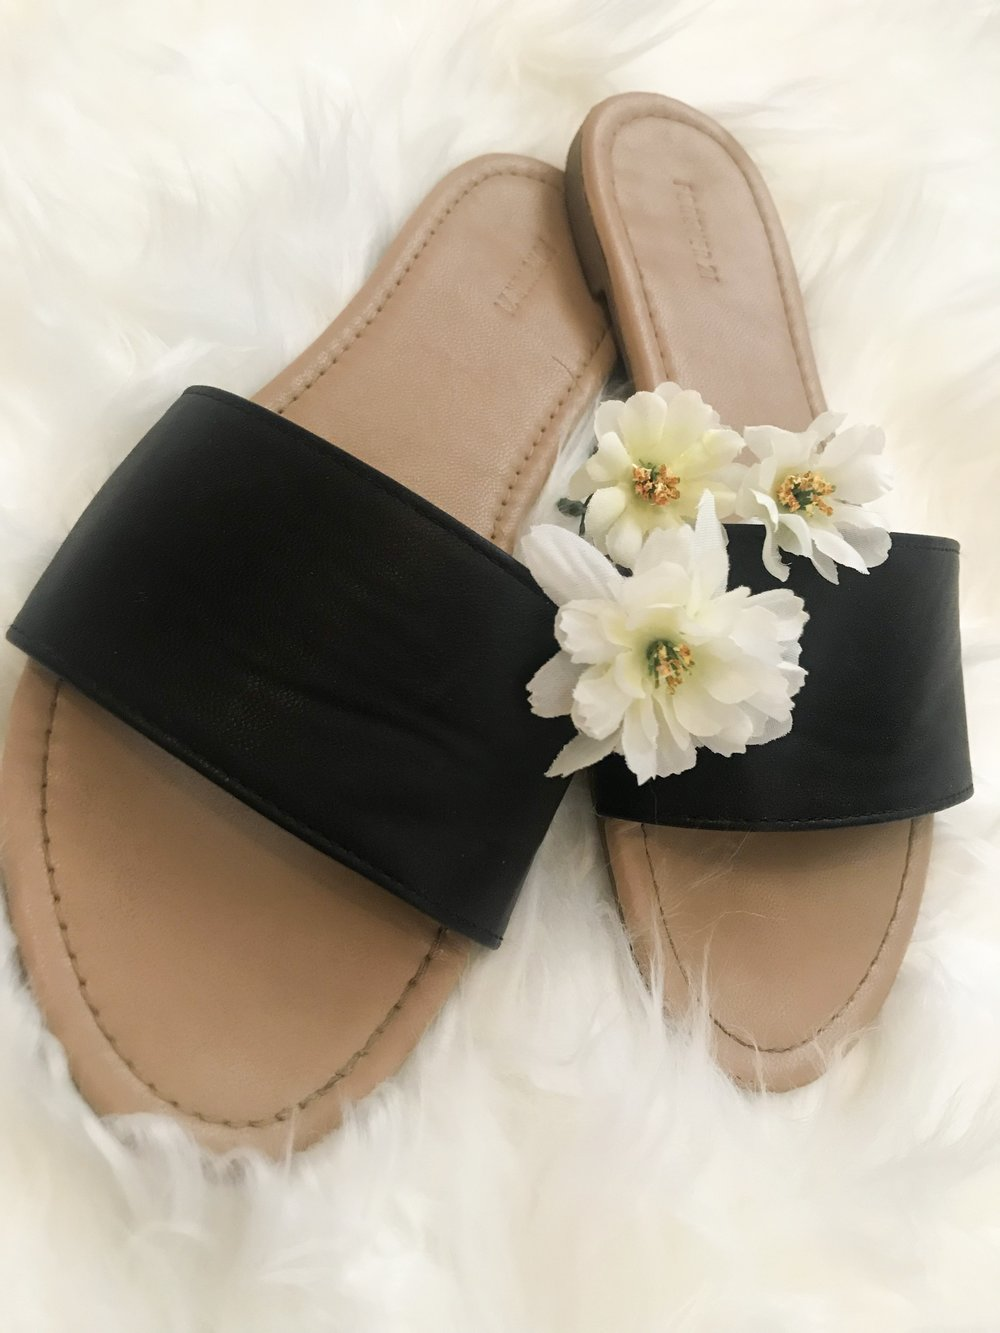 Black Slide Sandals  $9.90 - Forever 21 - These sandals have been apart of almost every outfit this summer! They are so cute and simple and go with everything!! A must have!